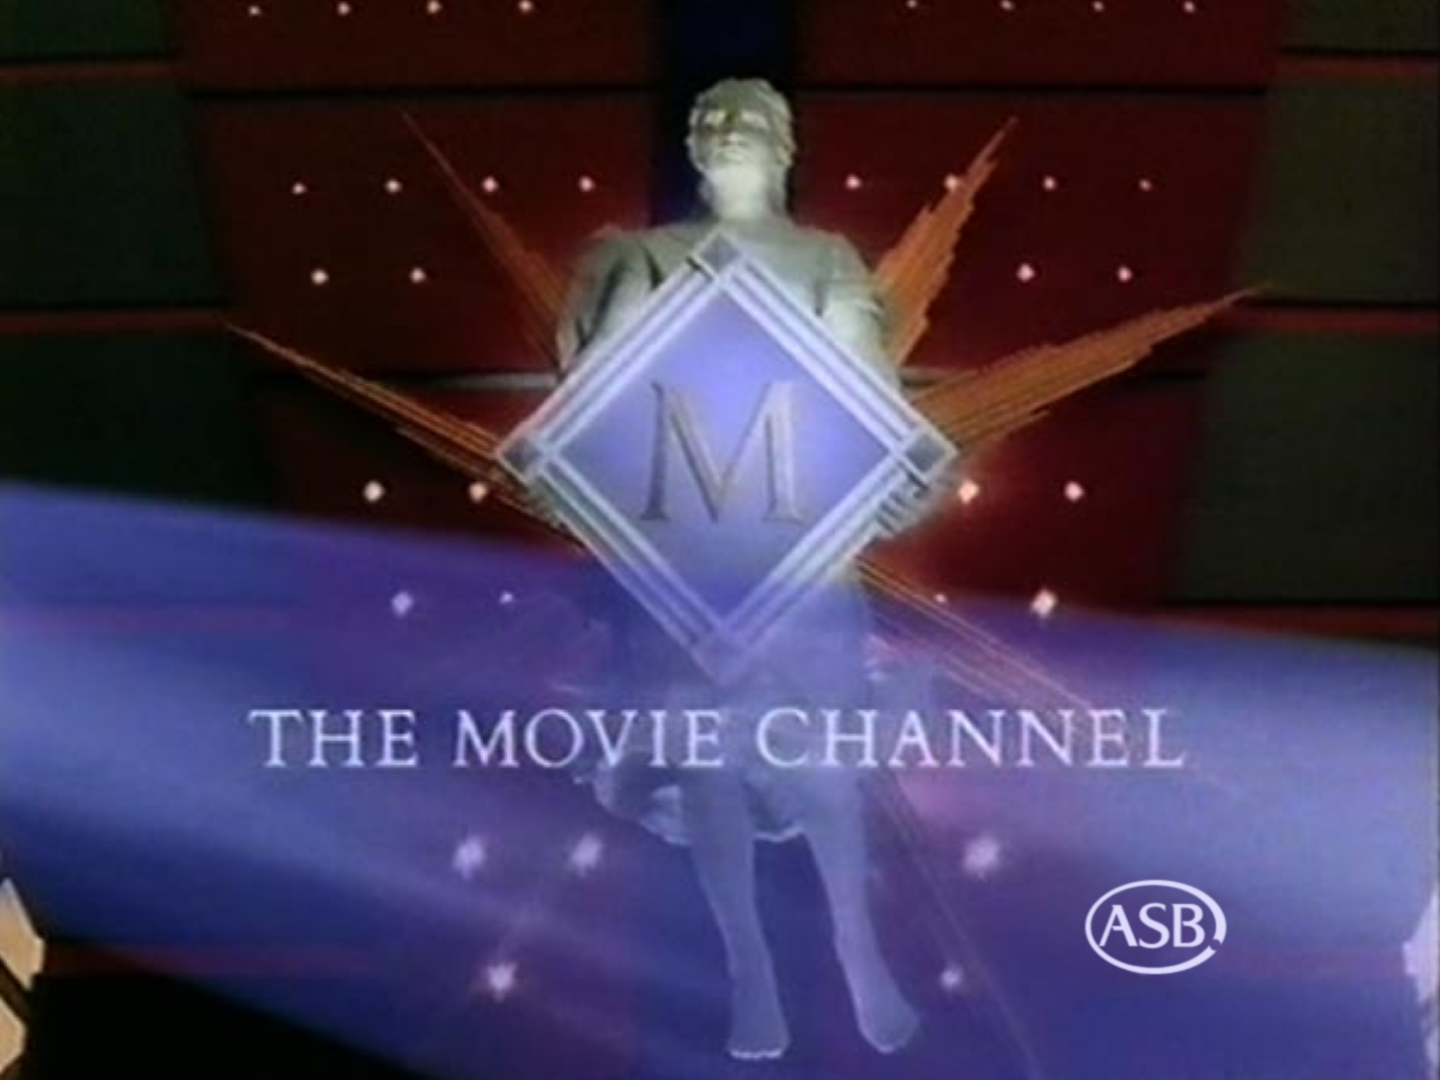 The Movie Channel (Anglosaw)